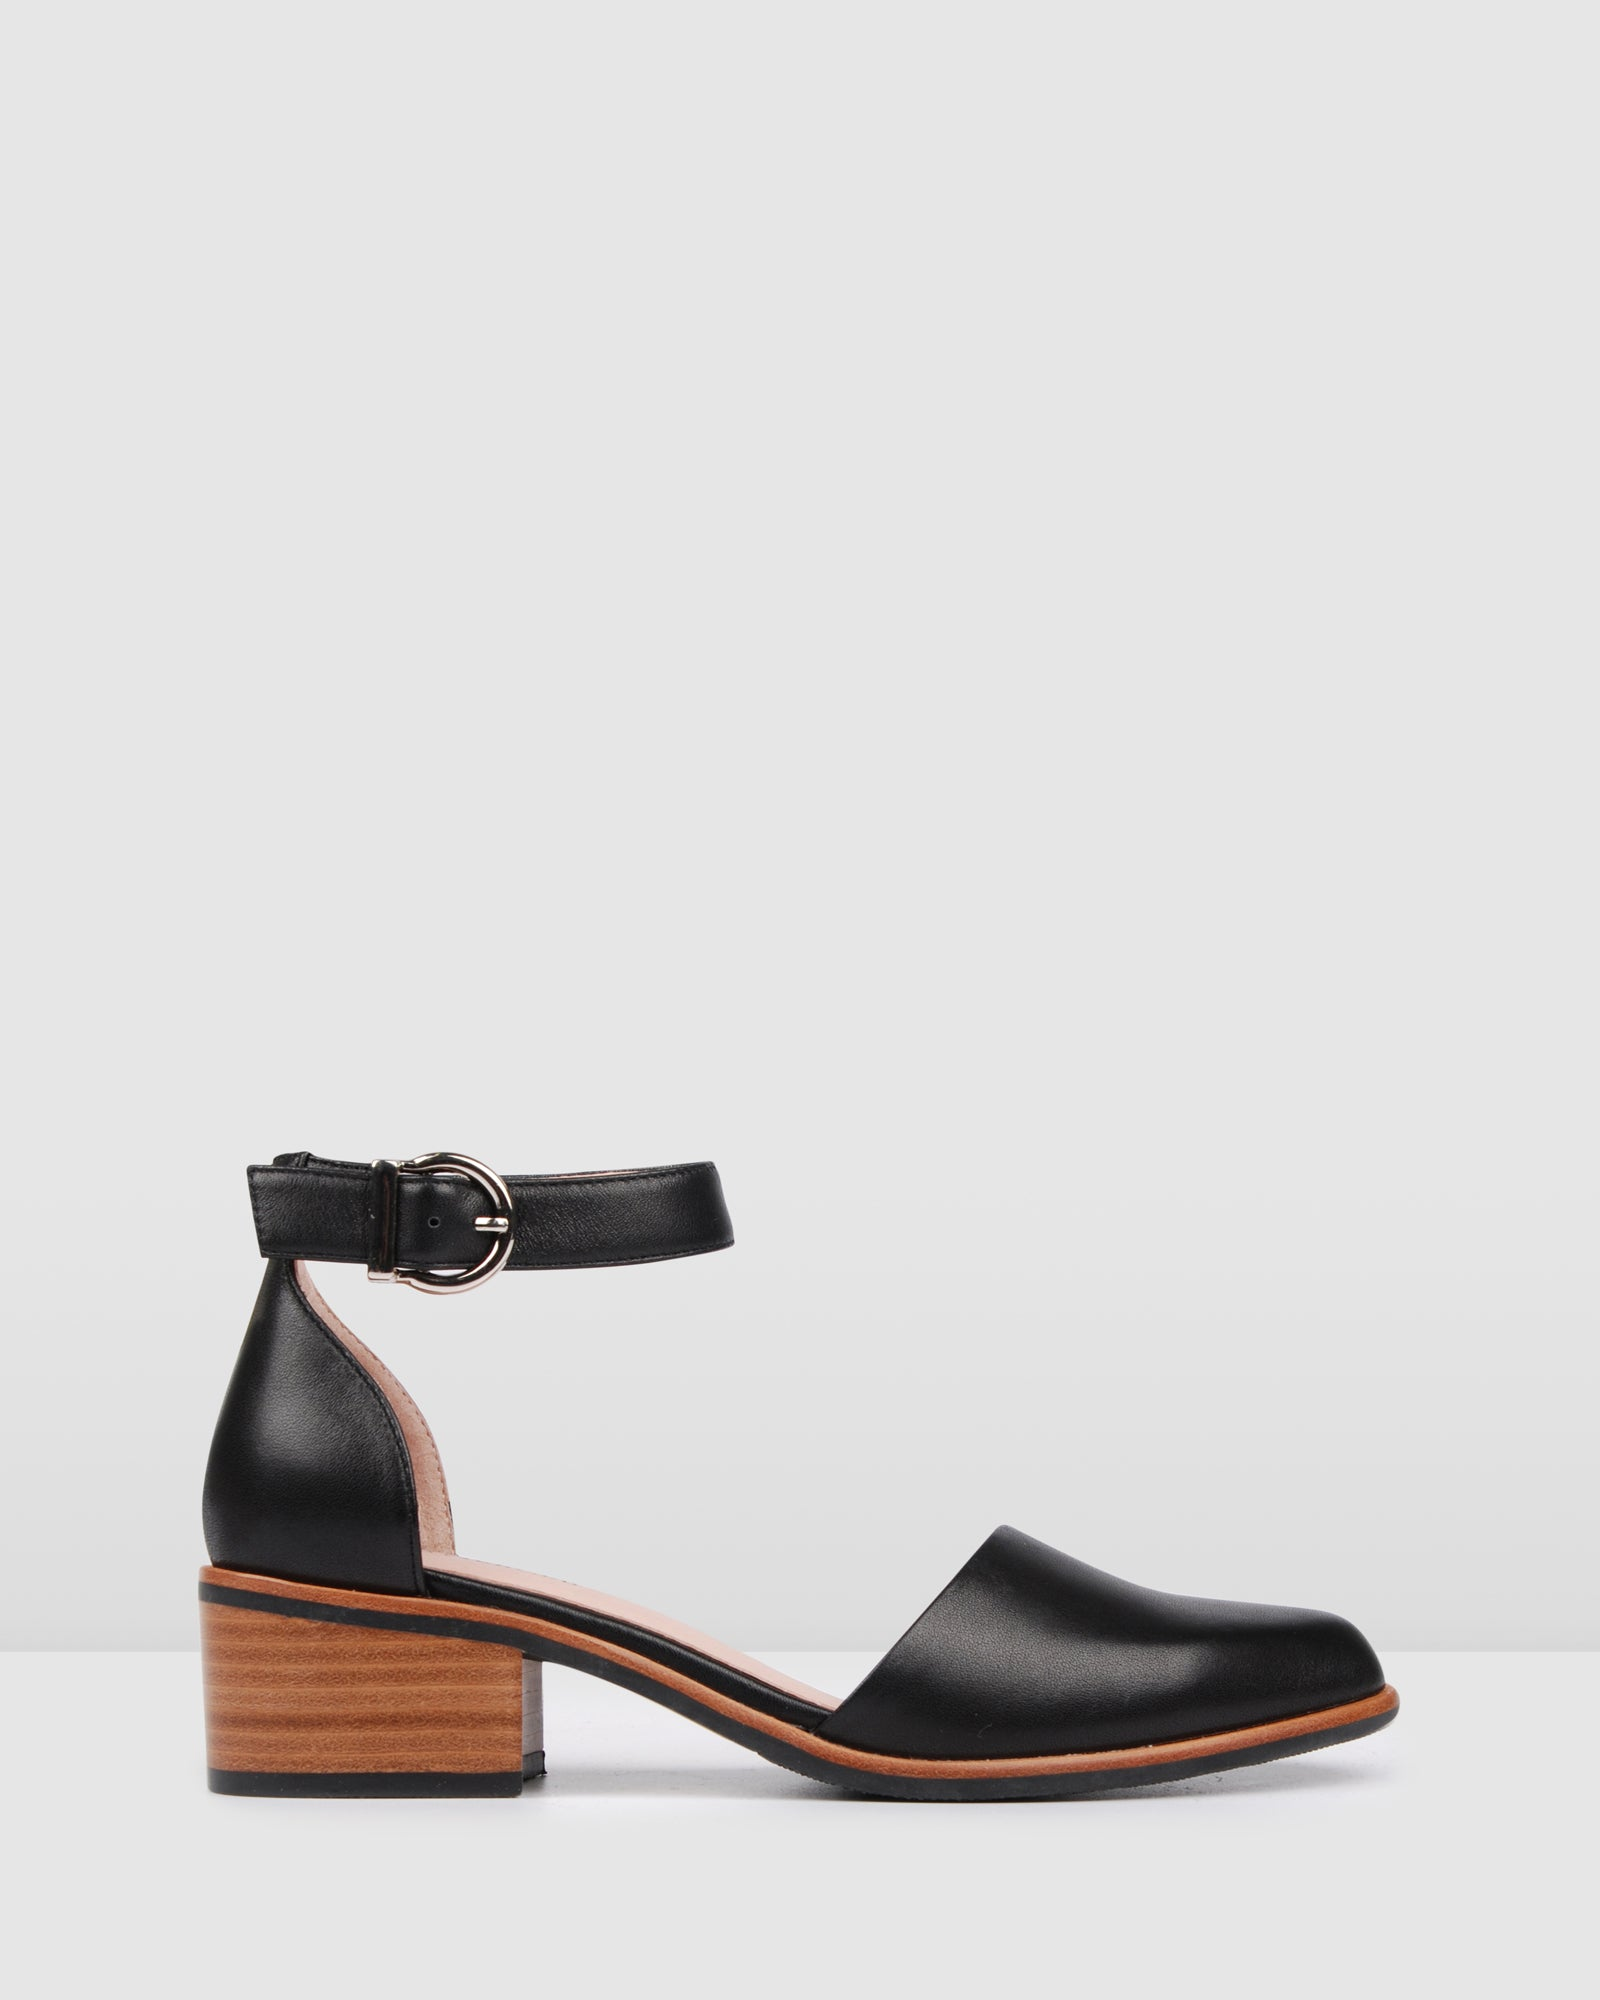 VERSAILLES LOW HEELS BLACK LEATHER